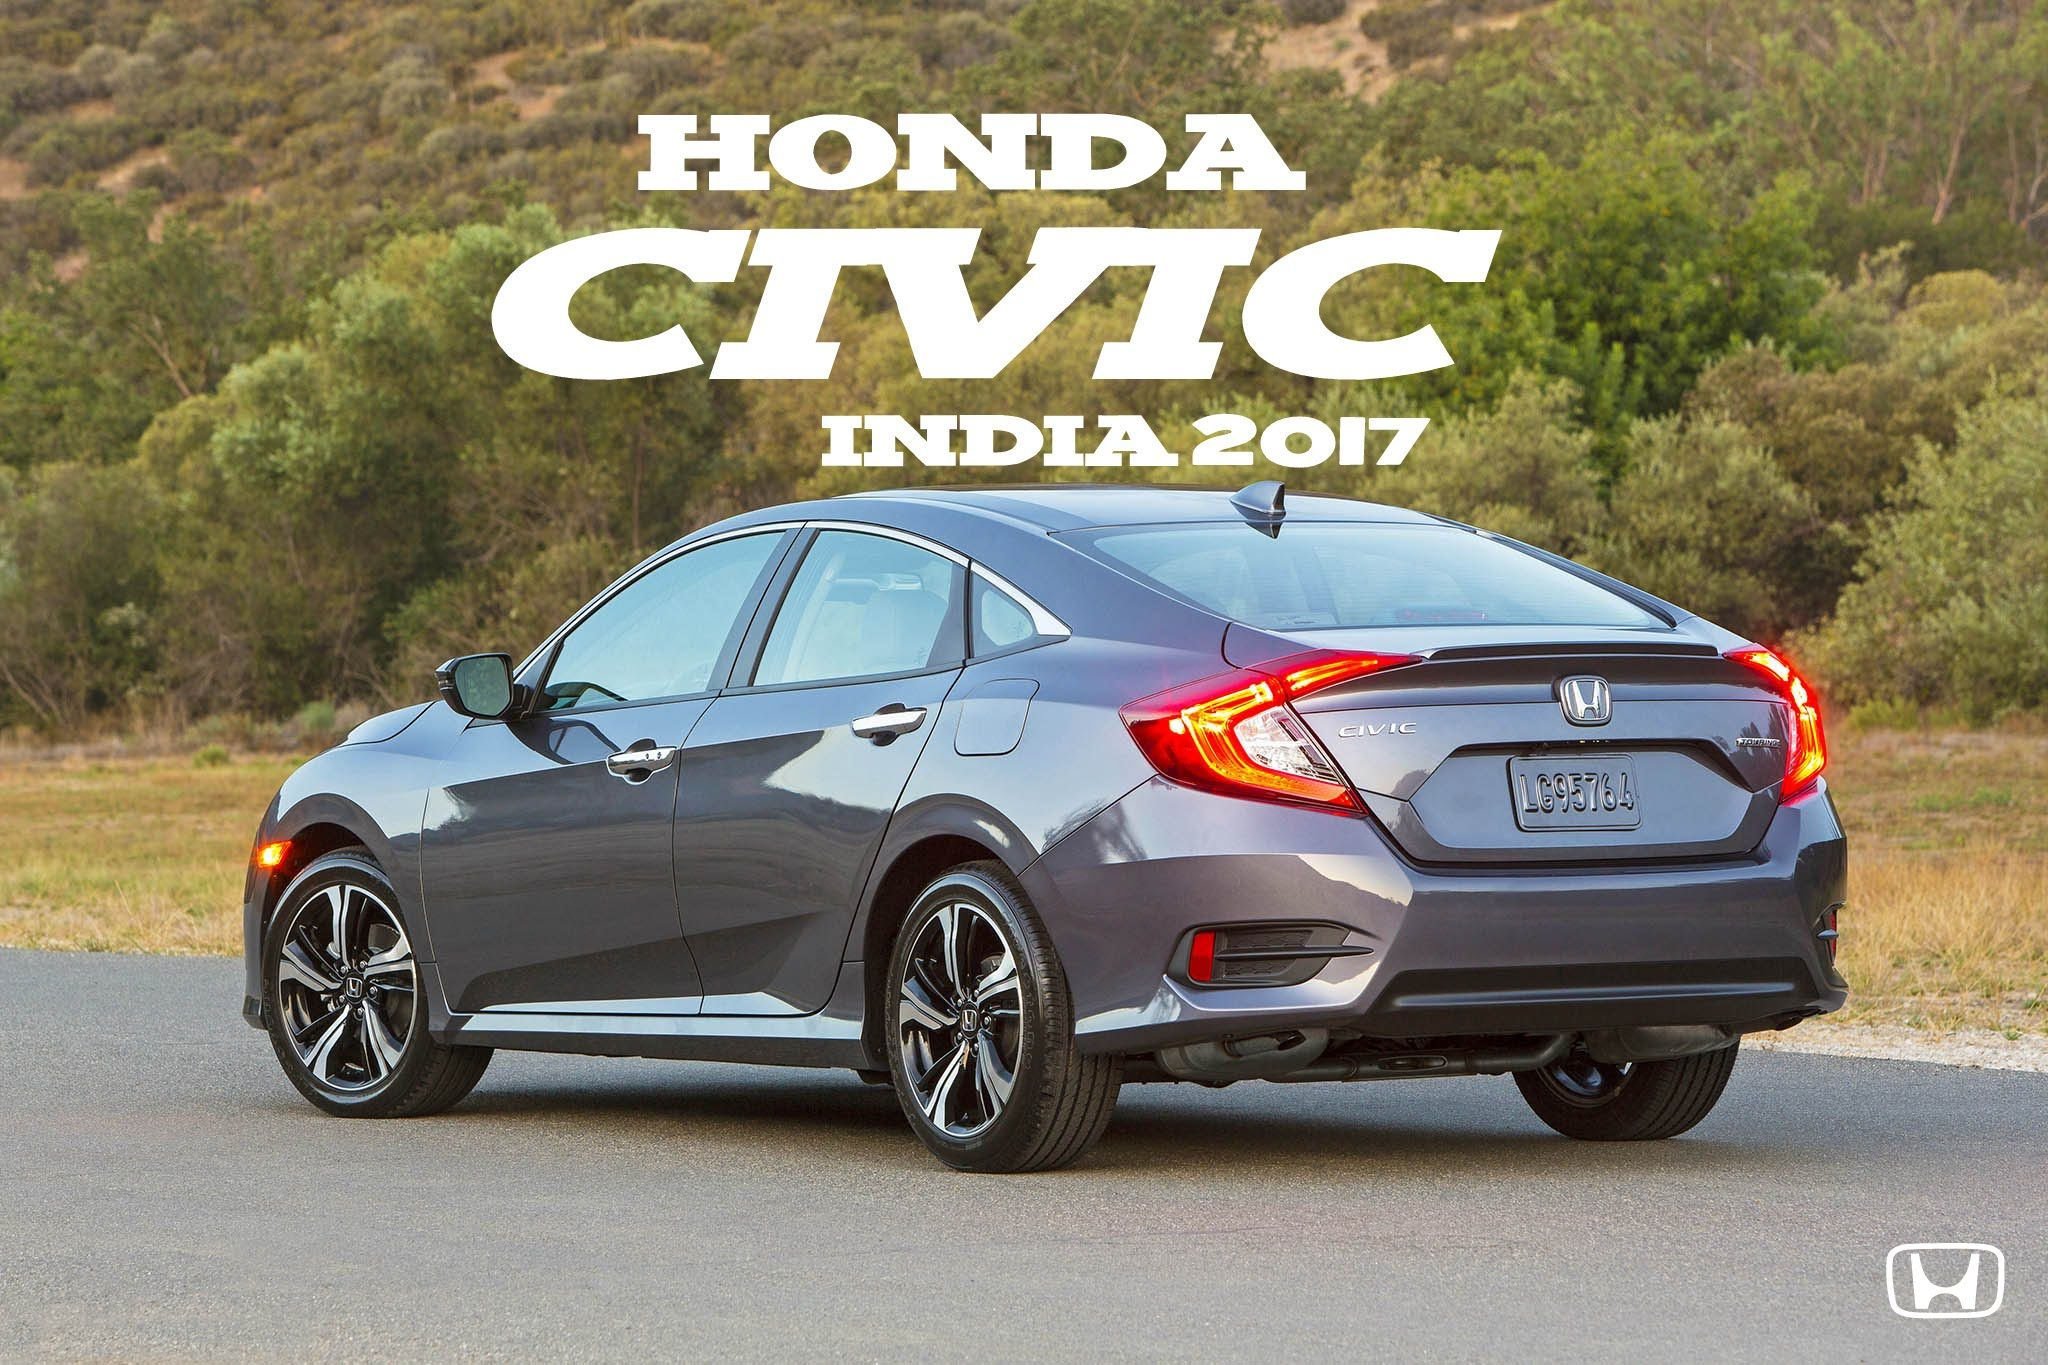 New Civic 2017 The All New Honda Civic 2017 Visit Us Hondacivic